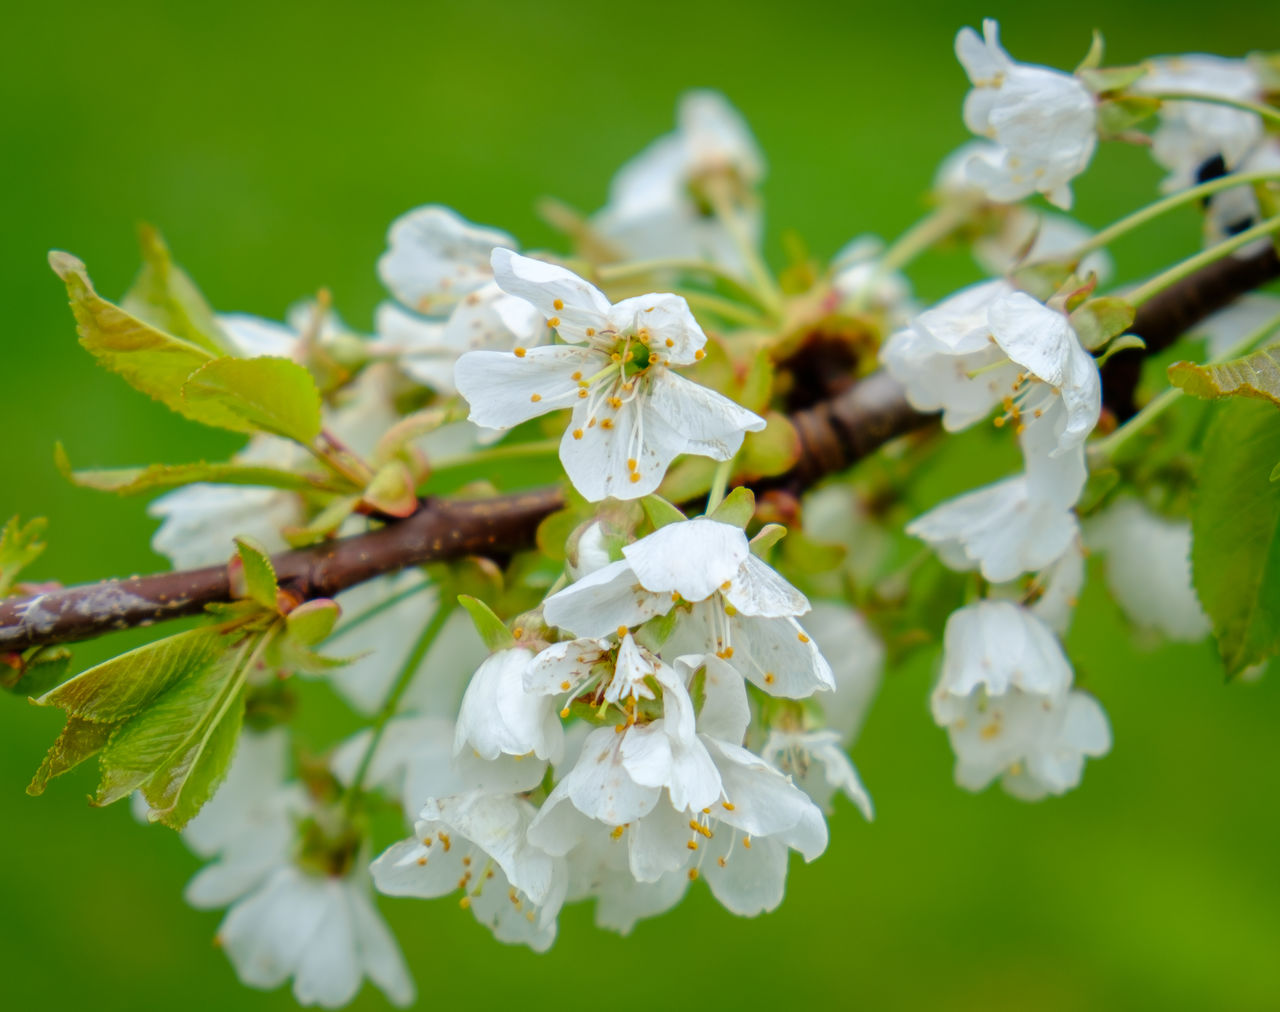 flower, white color, fragility, beauty in nature, nature, freshness, blossom, petal, growth, apple blossom, botany, no people, springtime, flower head, day, outdoors, tree, green color, branch, close-up, blooming